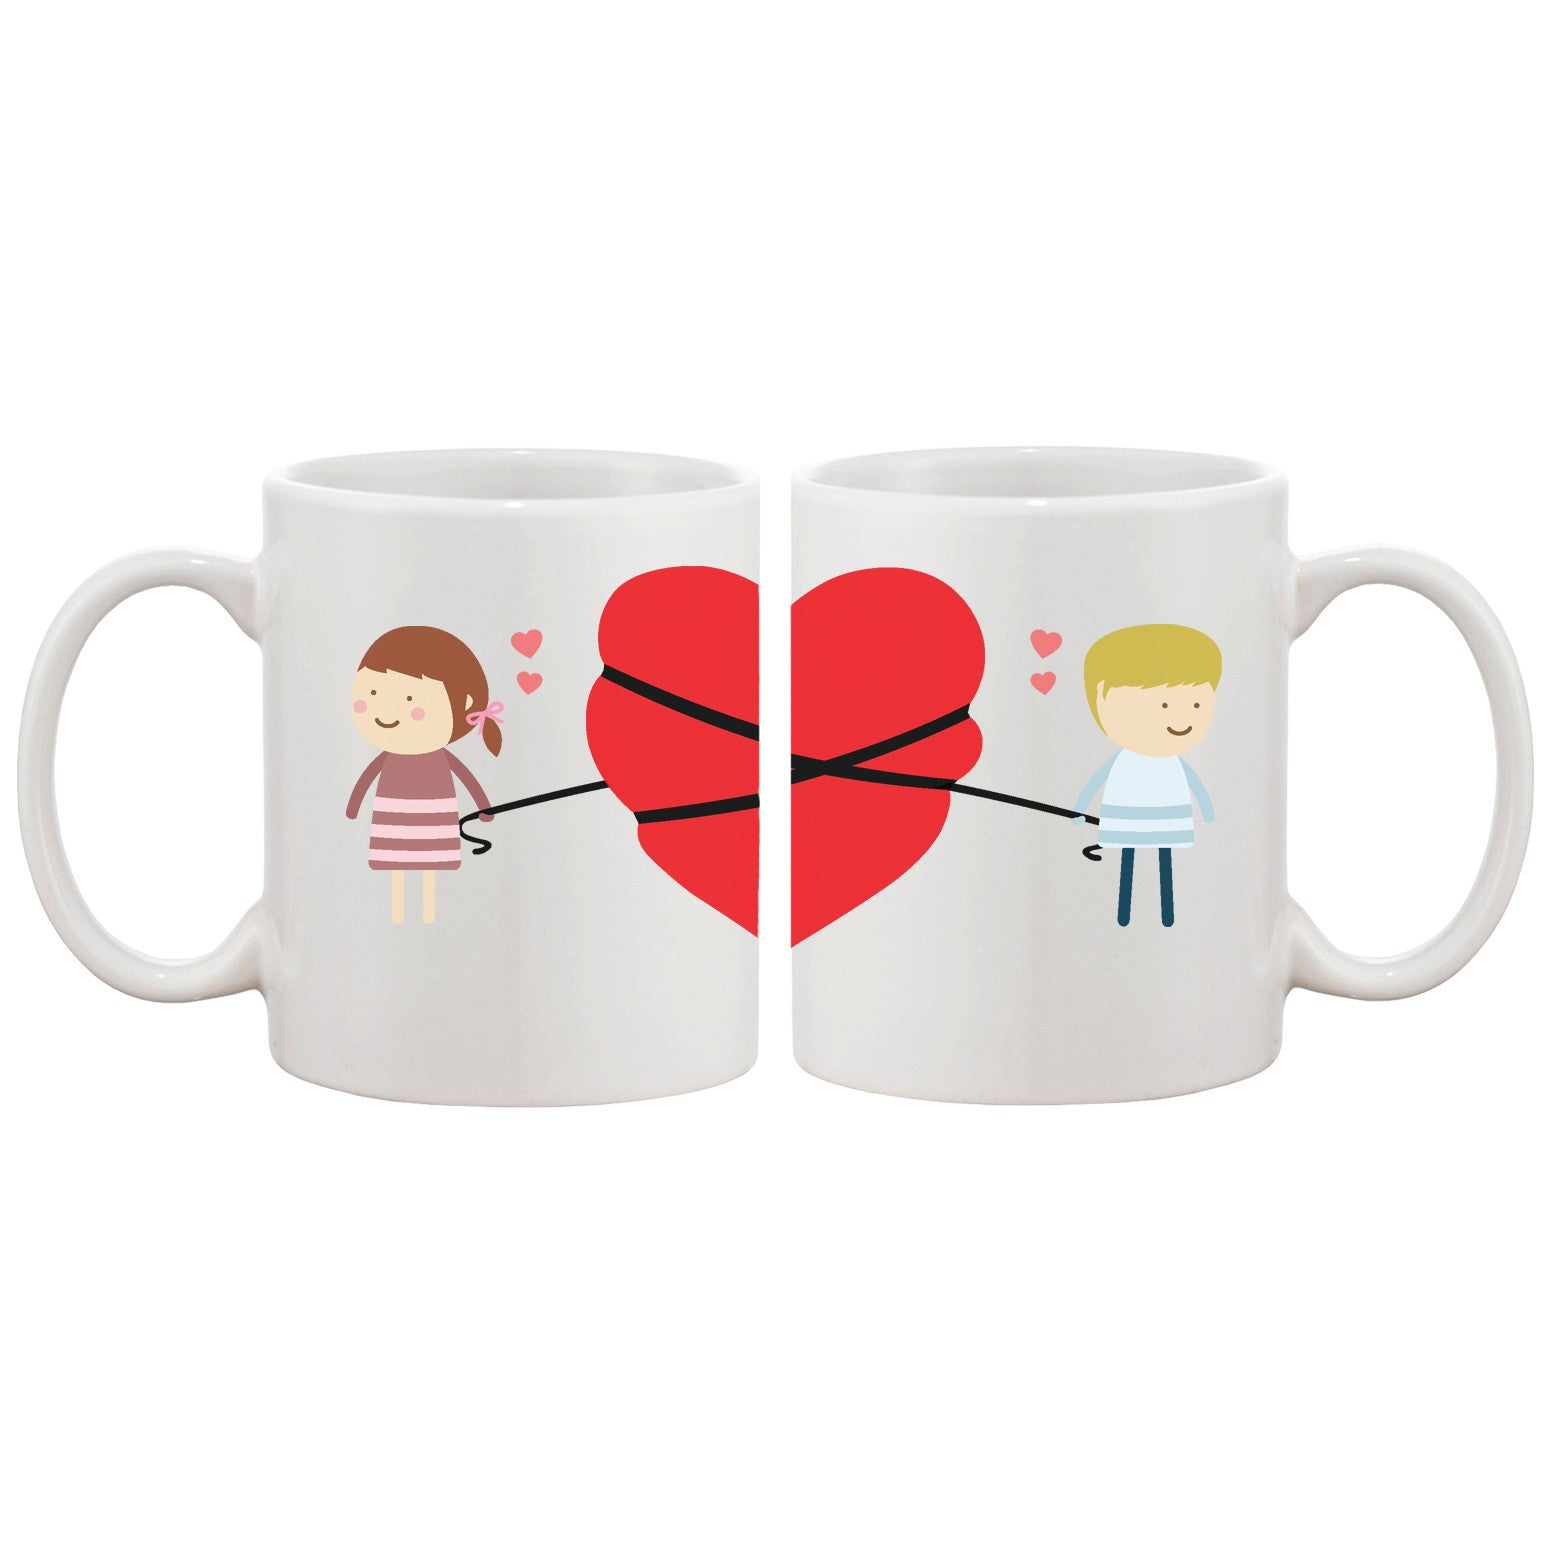 unique couple mugs perfect matching couples gift ideas 365 in love. Black Bedroom Furniture Sets. Home Design Ideas